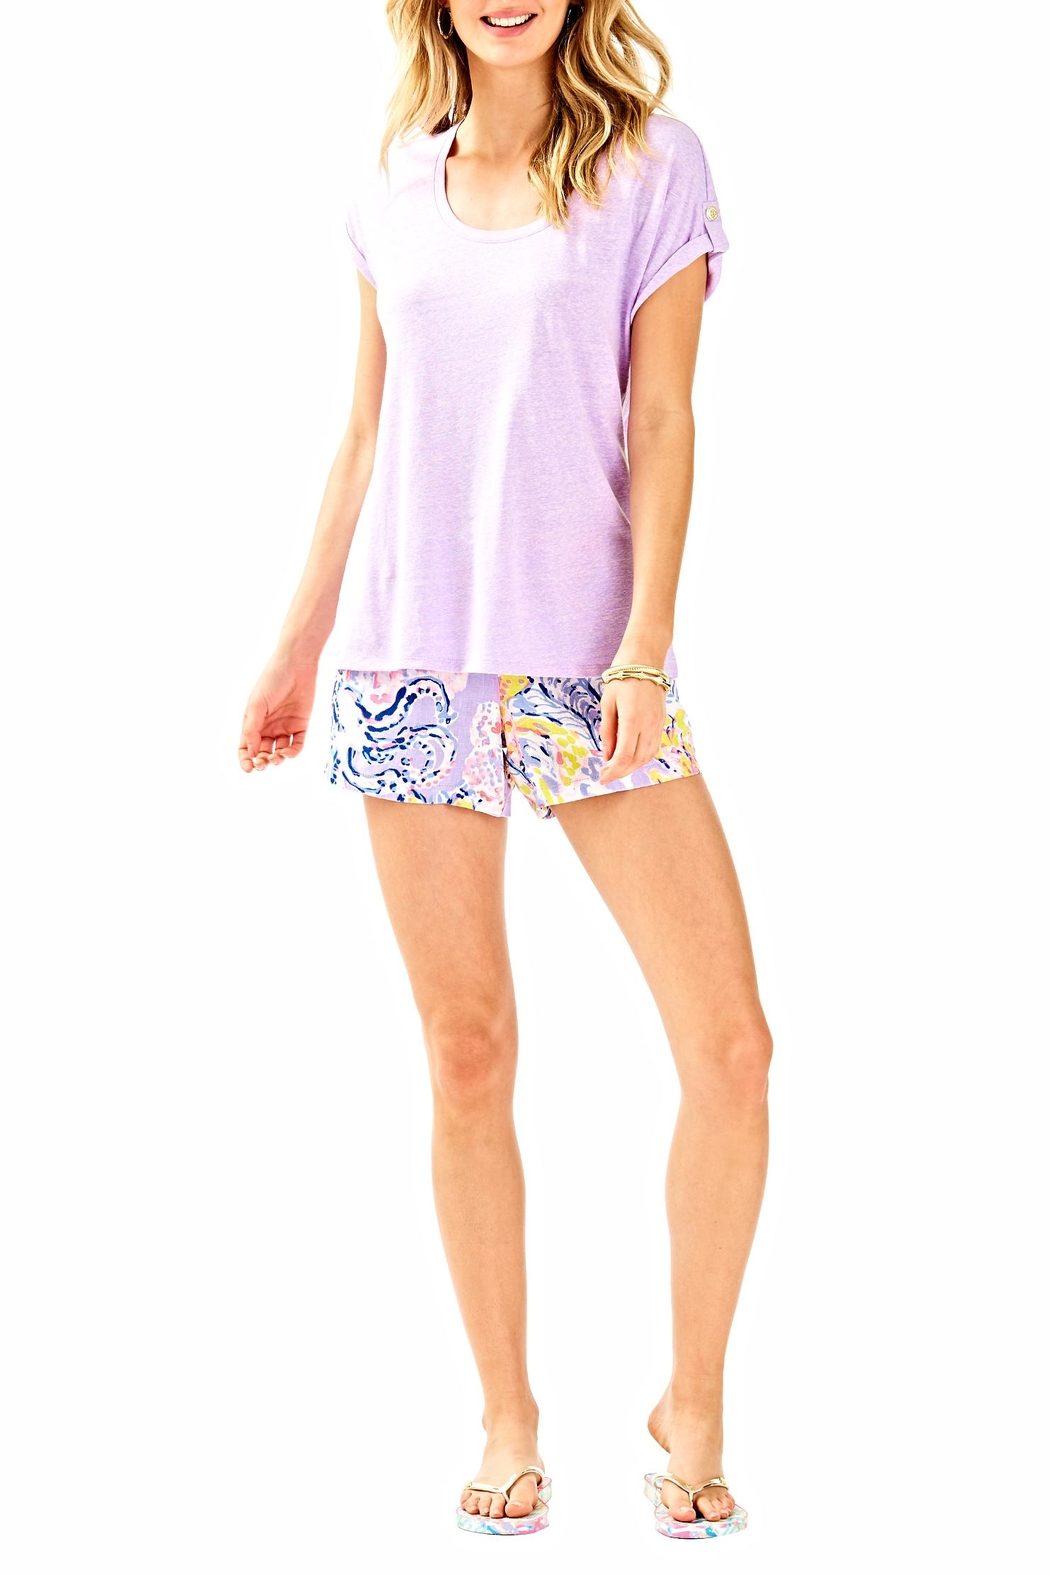 Lilly Pulitzer Inara Top - Side Cropped Image